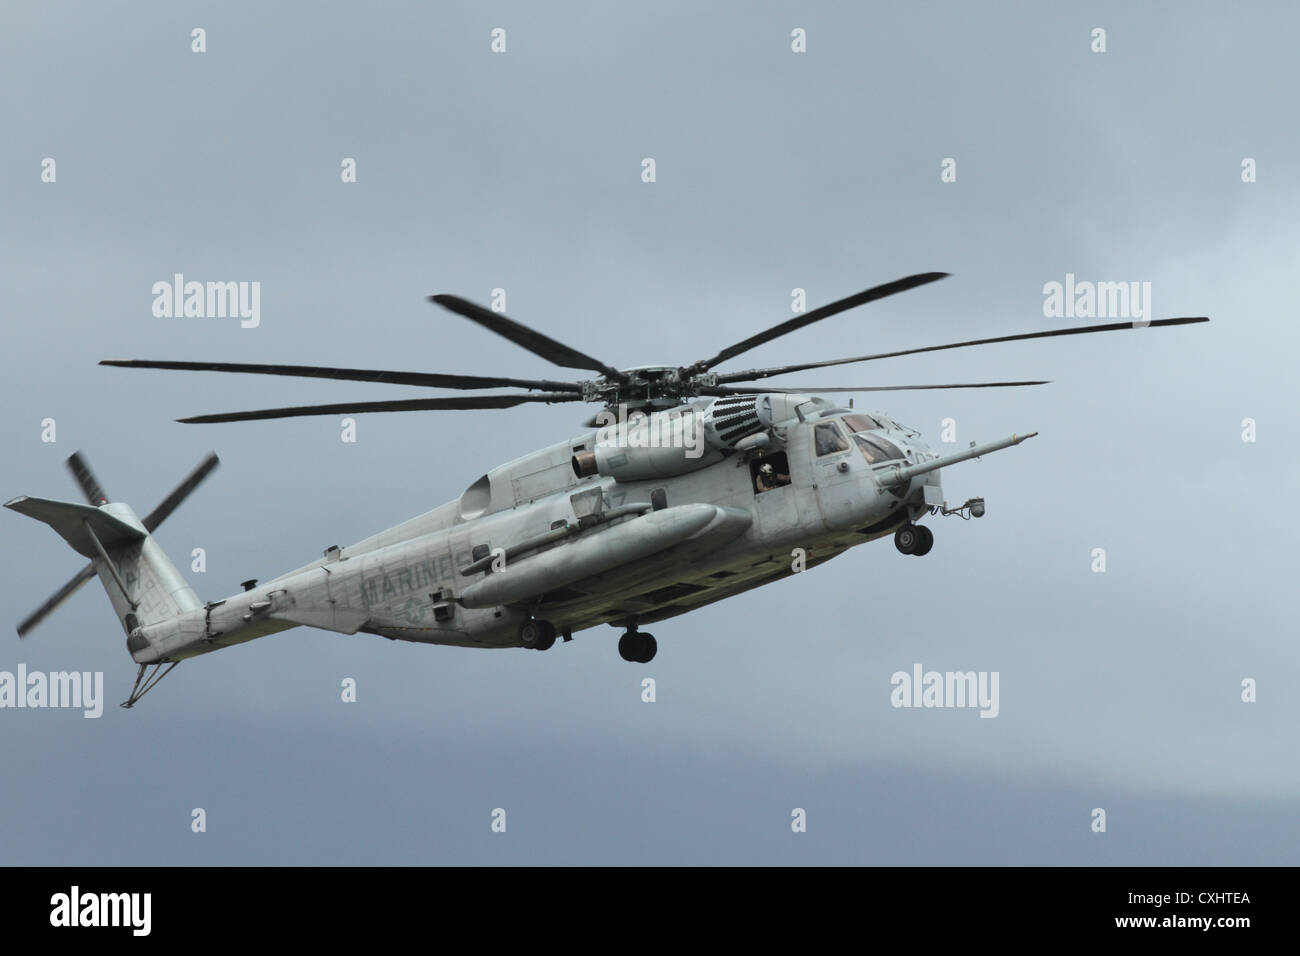 A CH-53E Super Stallion helicopter demonstrates its landing capabilitiy during the 2012 Kaneohe Bay Air Show on - Stock Image